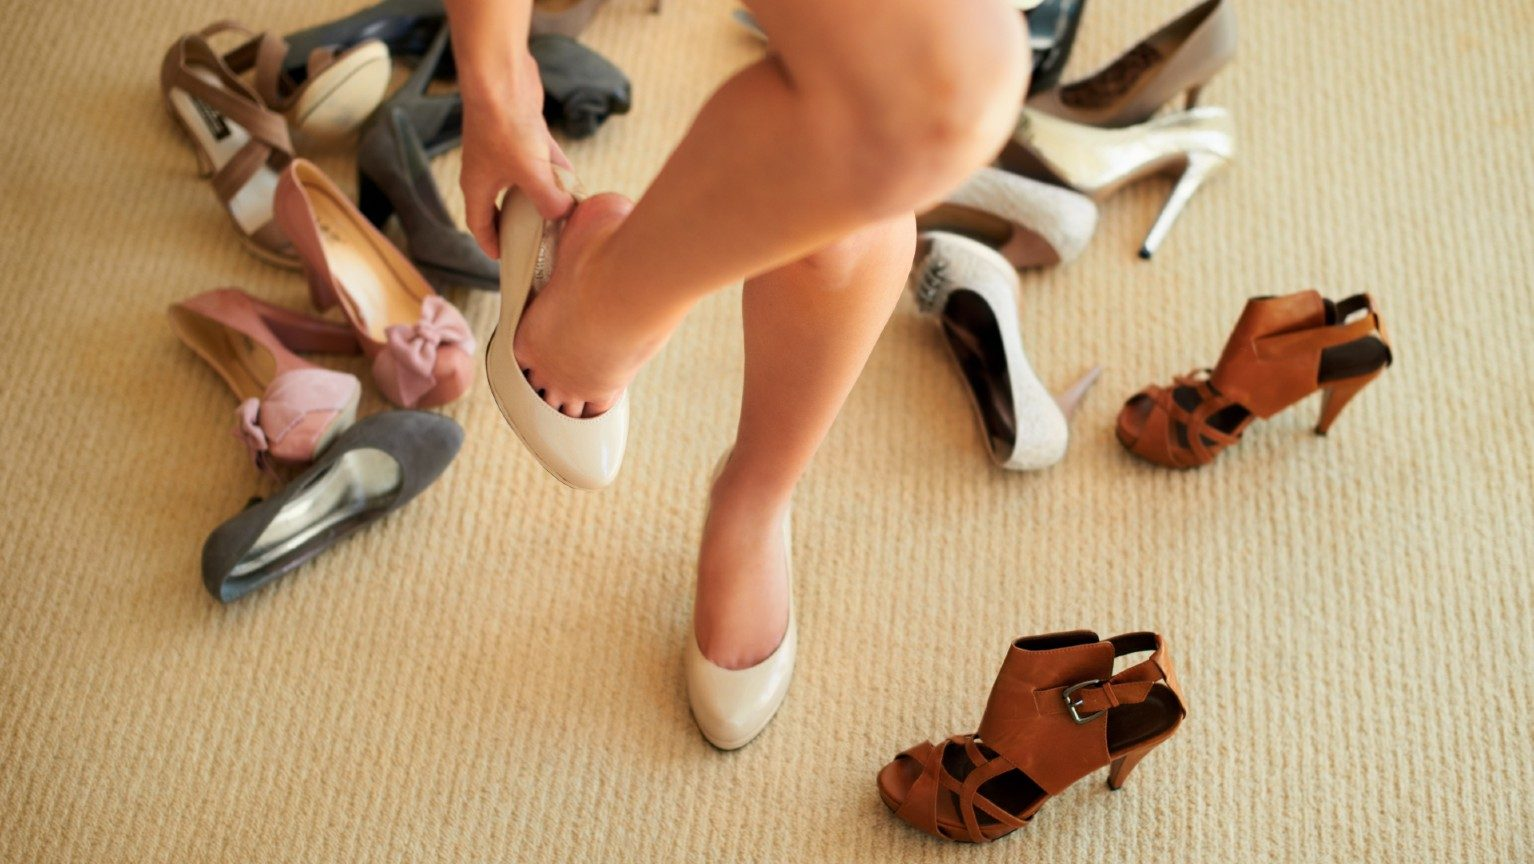 Woman trying on shoes